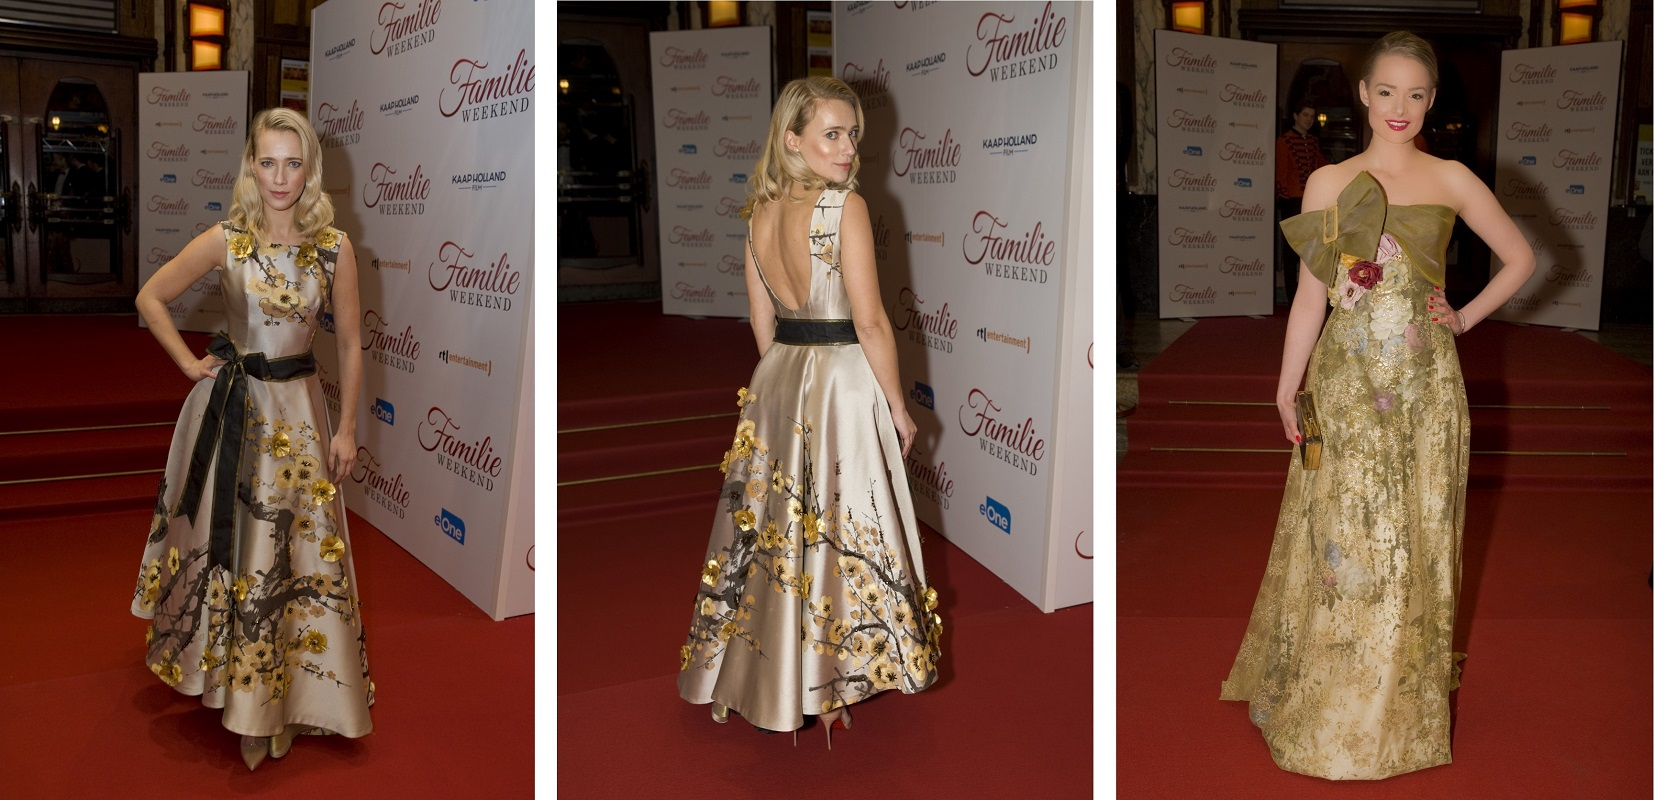 Premiere Familieweekend Glamourland (2)